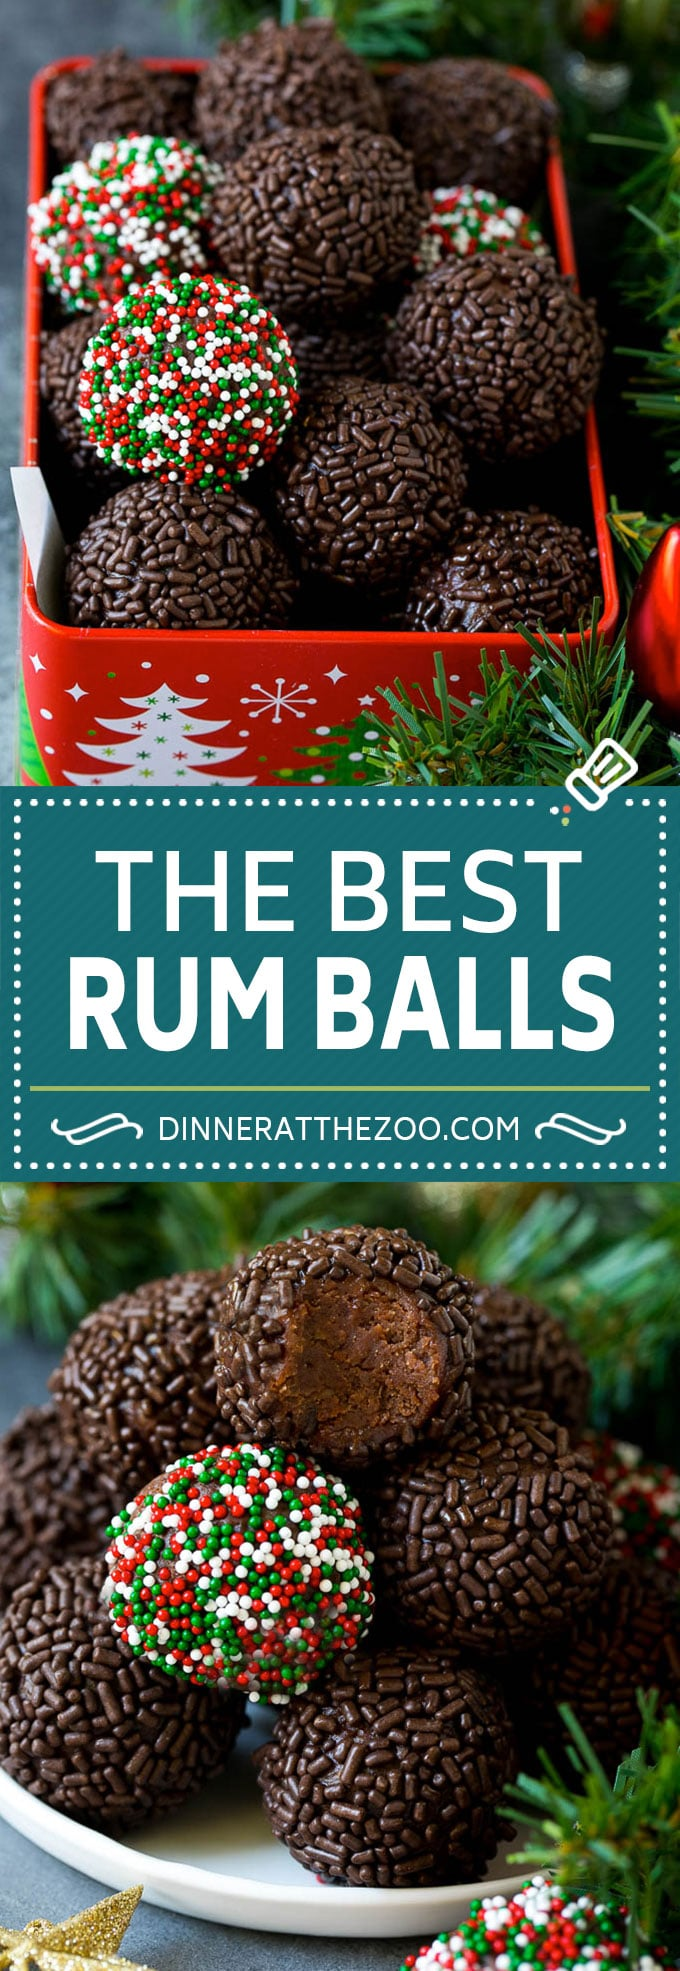 Rum Balls Recipe - Dinner at the Zoo